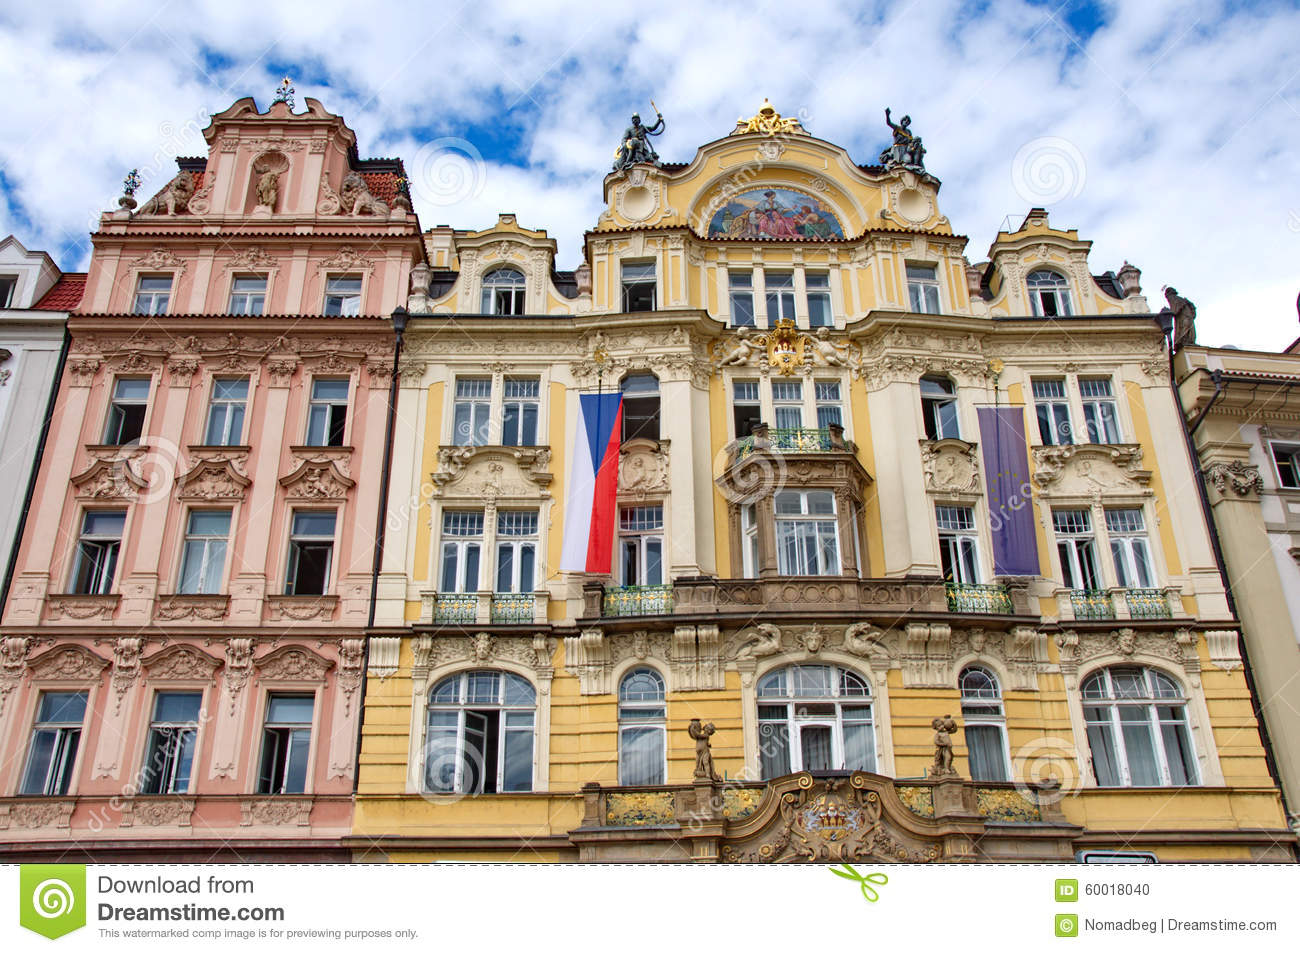 Art of baroque architecture details stock photo image for Pictures of baroque architecture